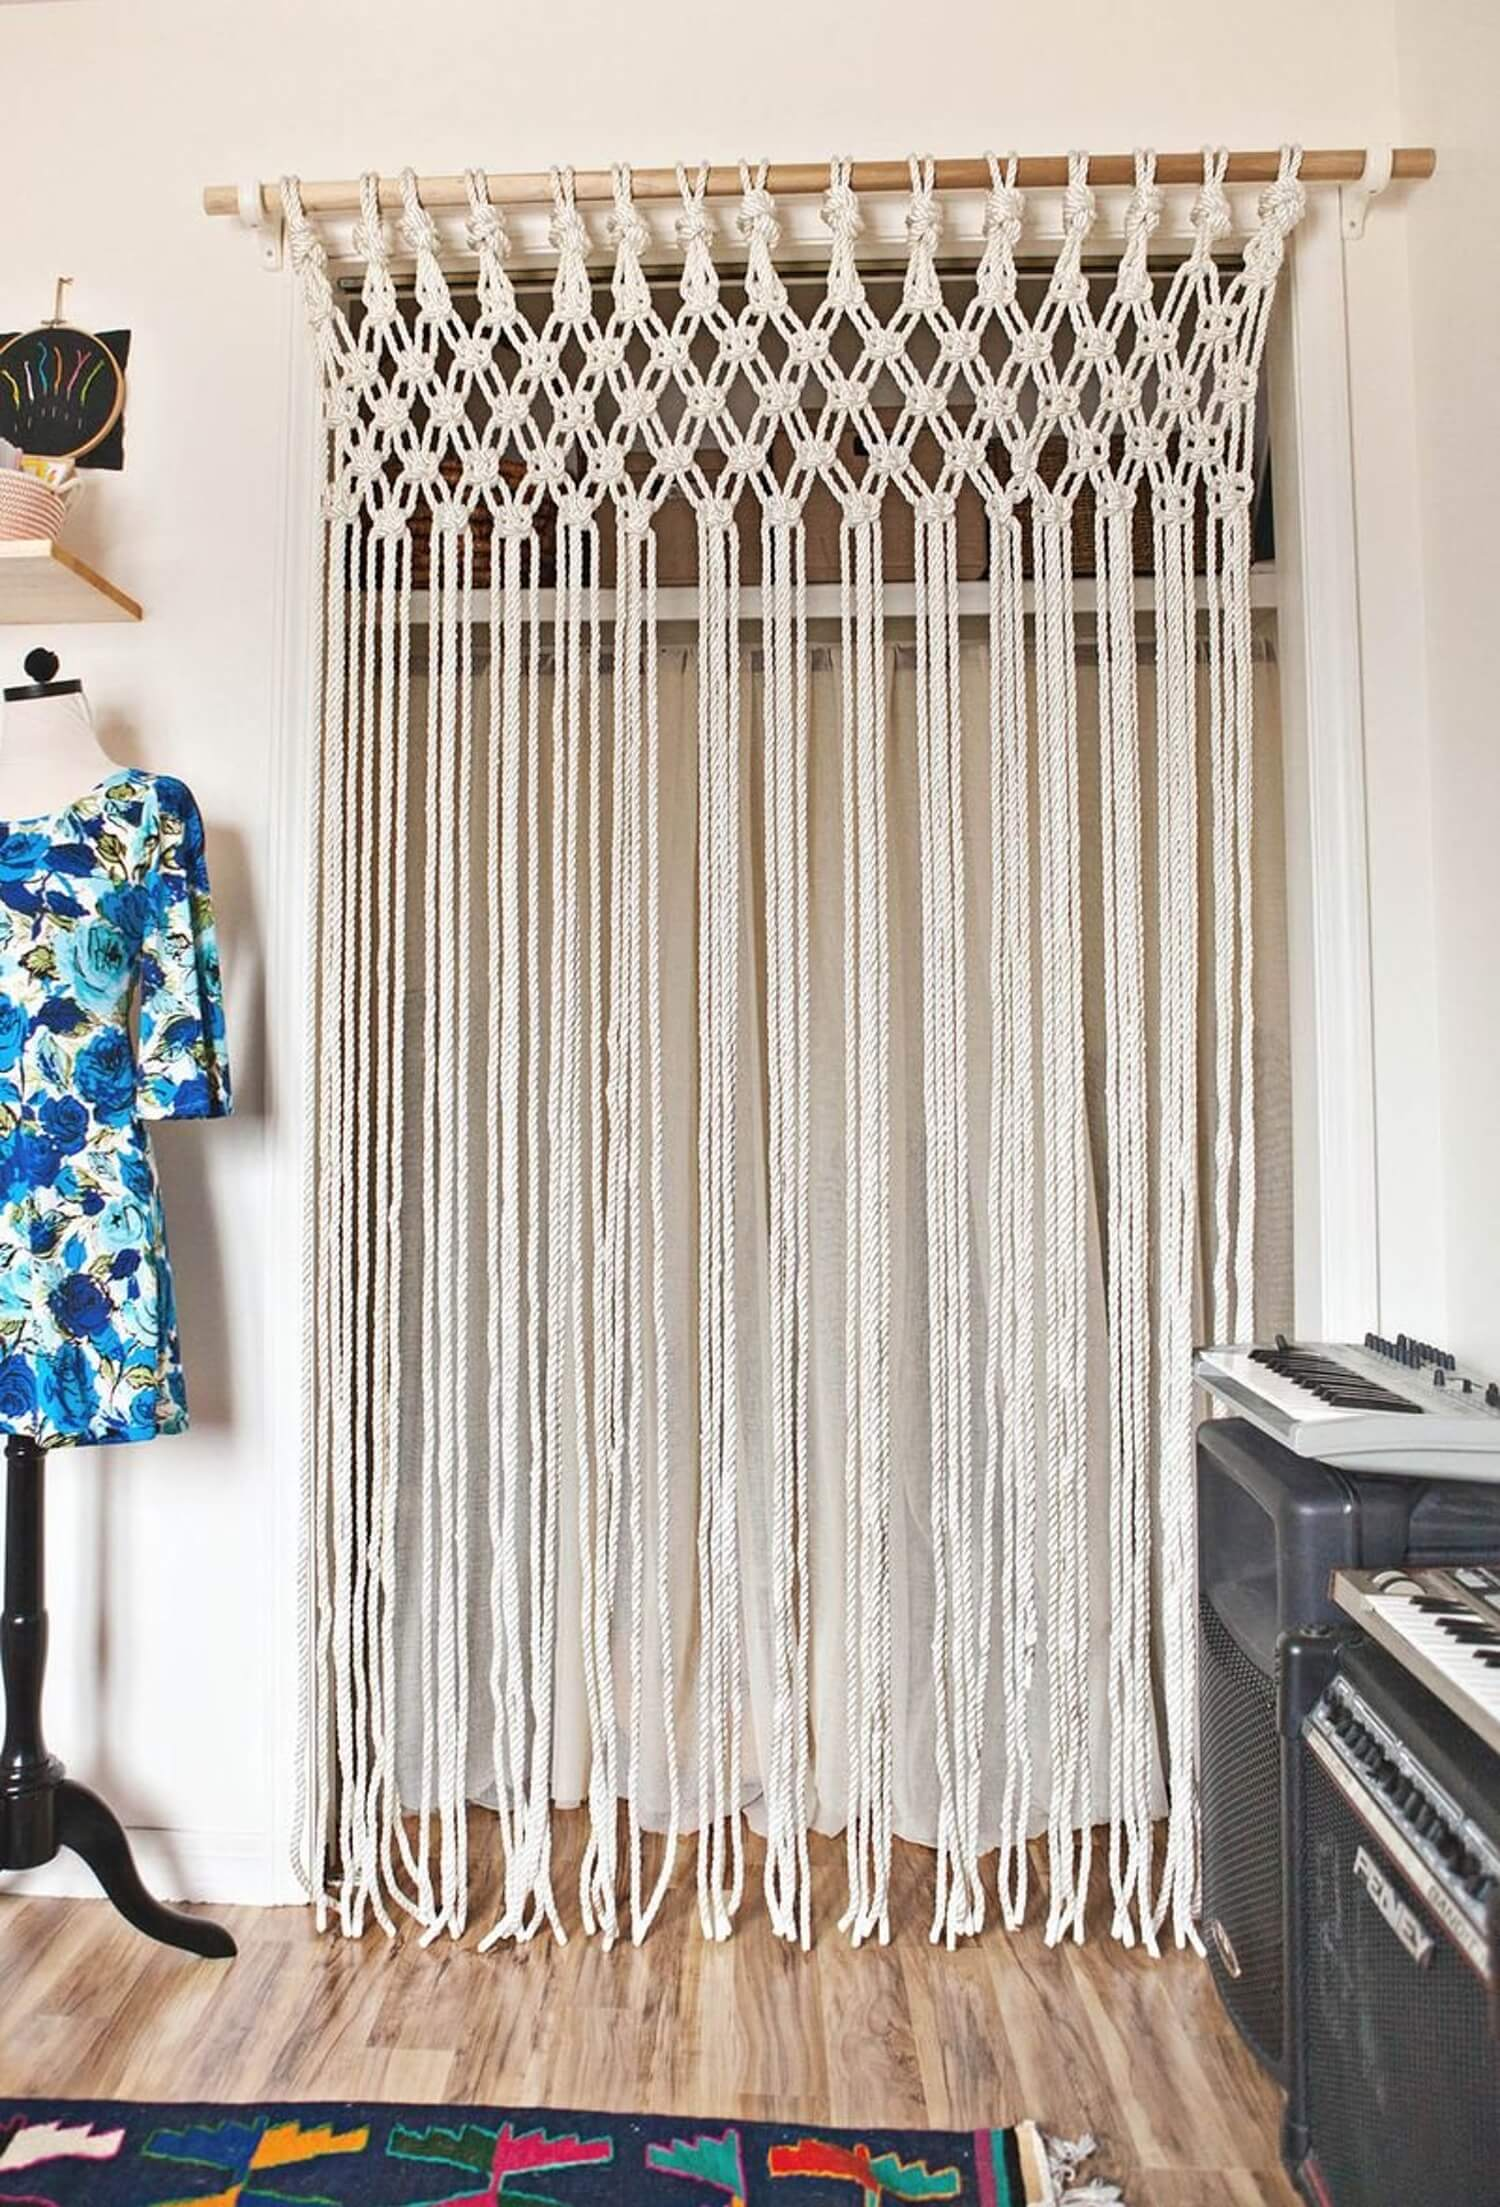 Vintage Macramé Off-White DIY Wall Hanging